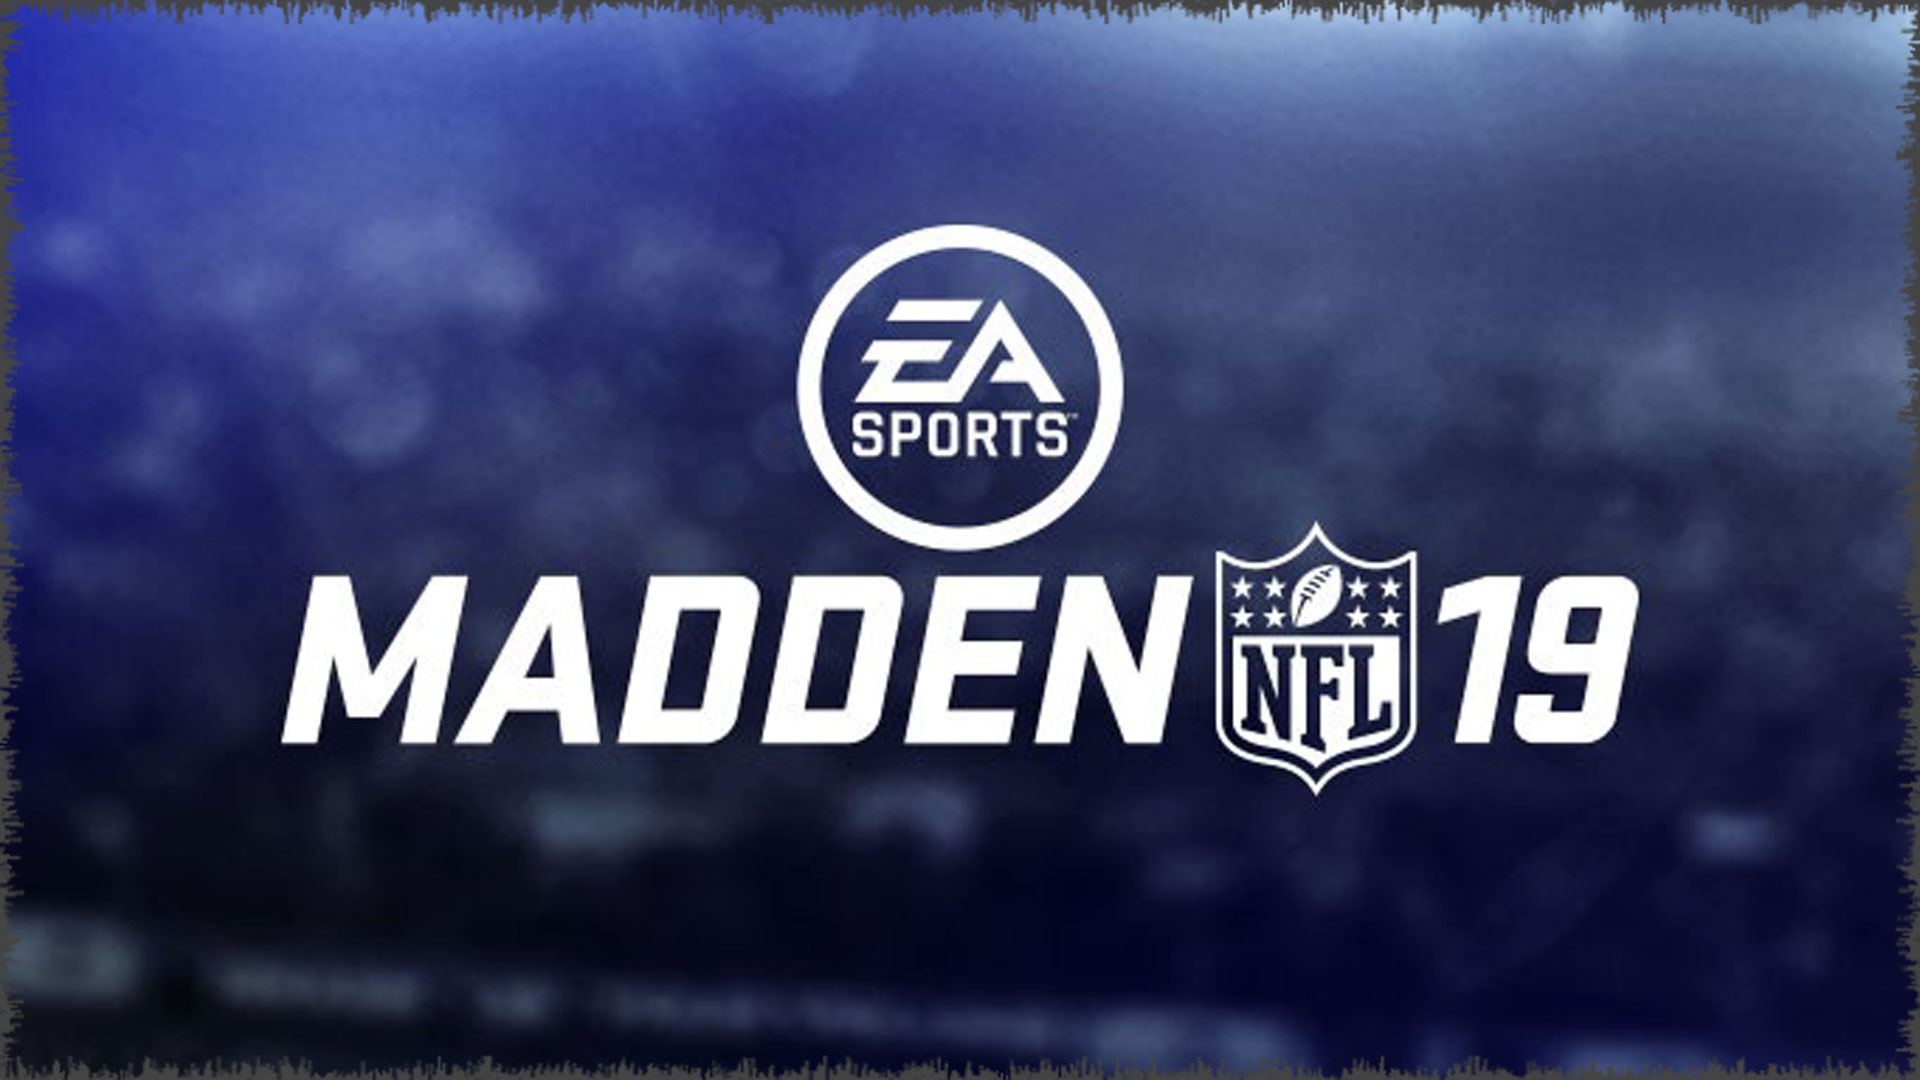 images/articles/madden19.jpg